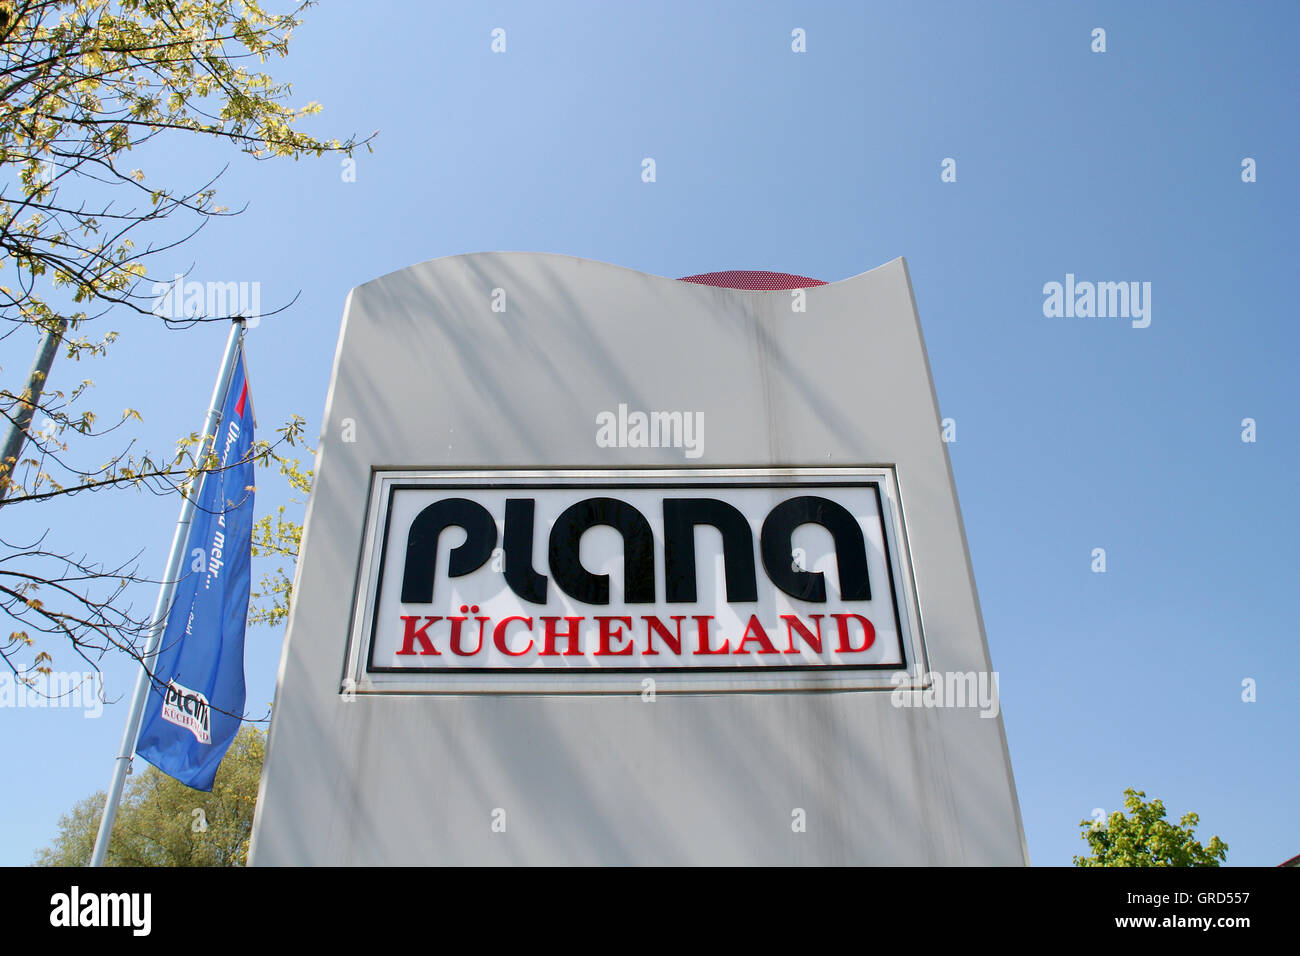 Logo Plana Kuchenland Stock Photo 117688739 Alamy